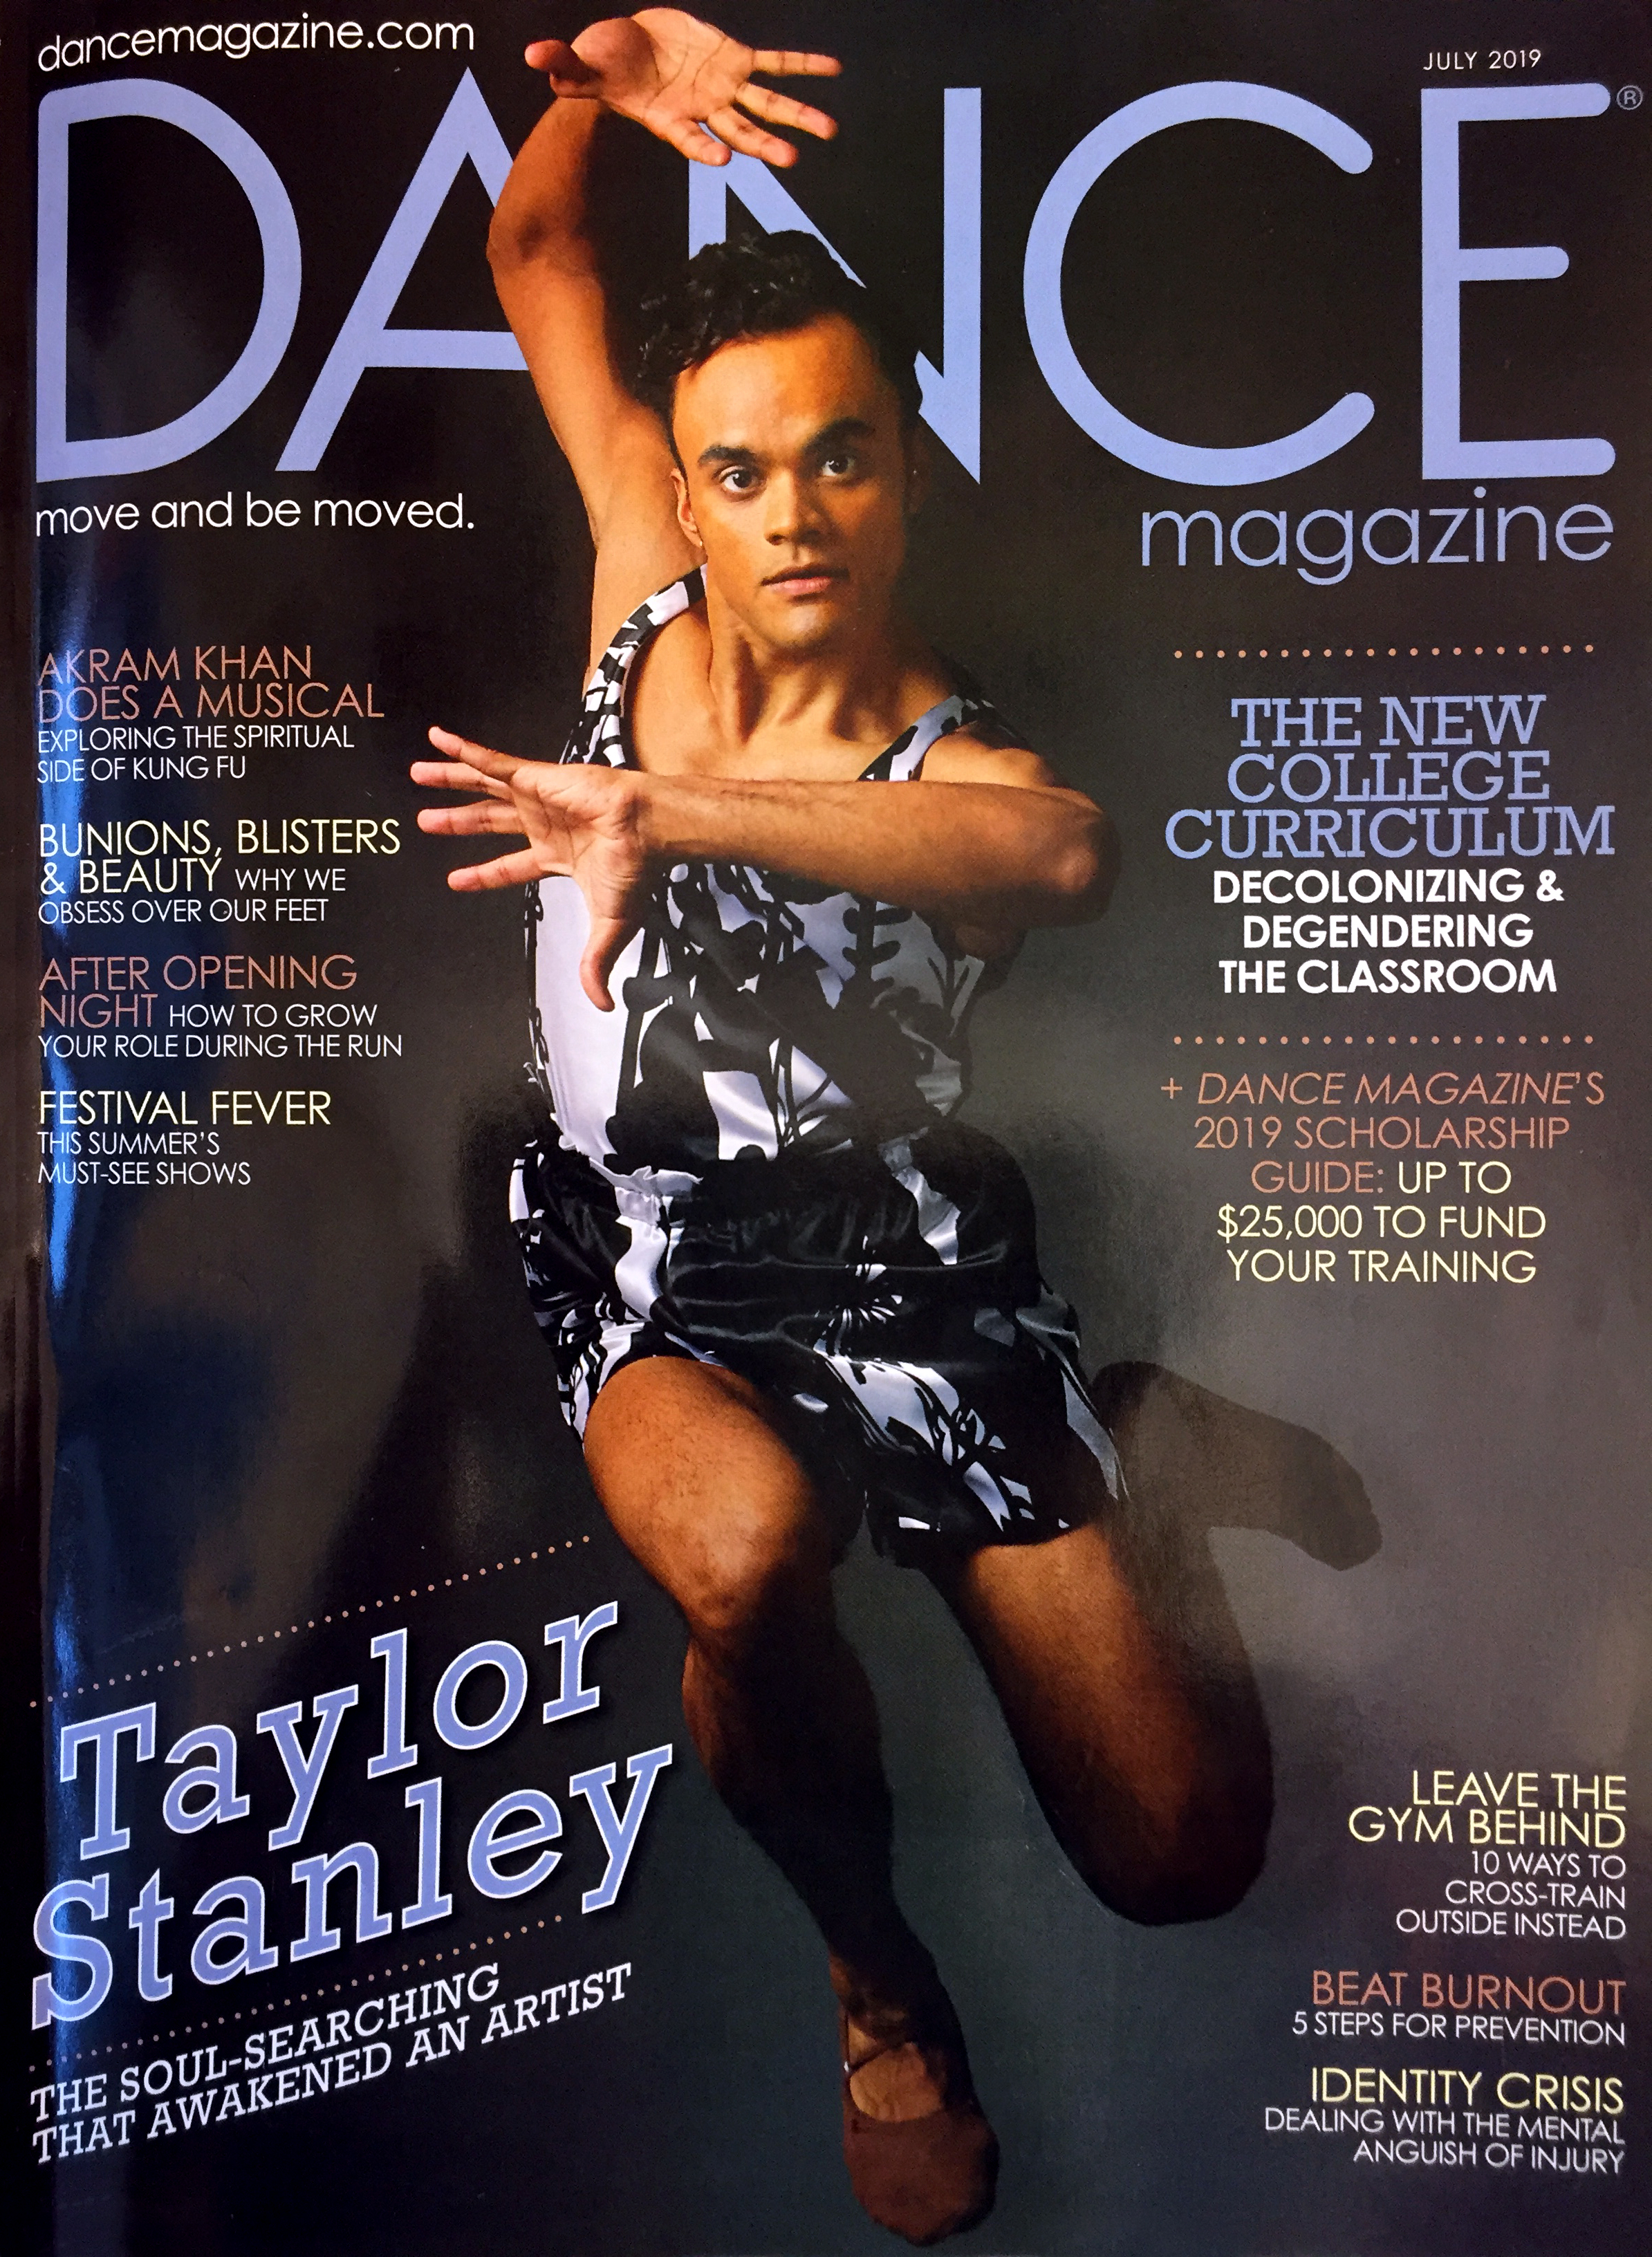 taylor-july-2019-dance-cover.jpg